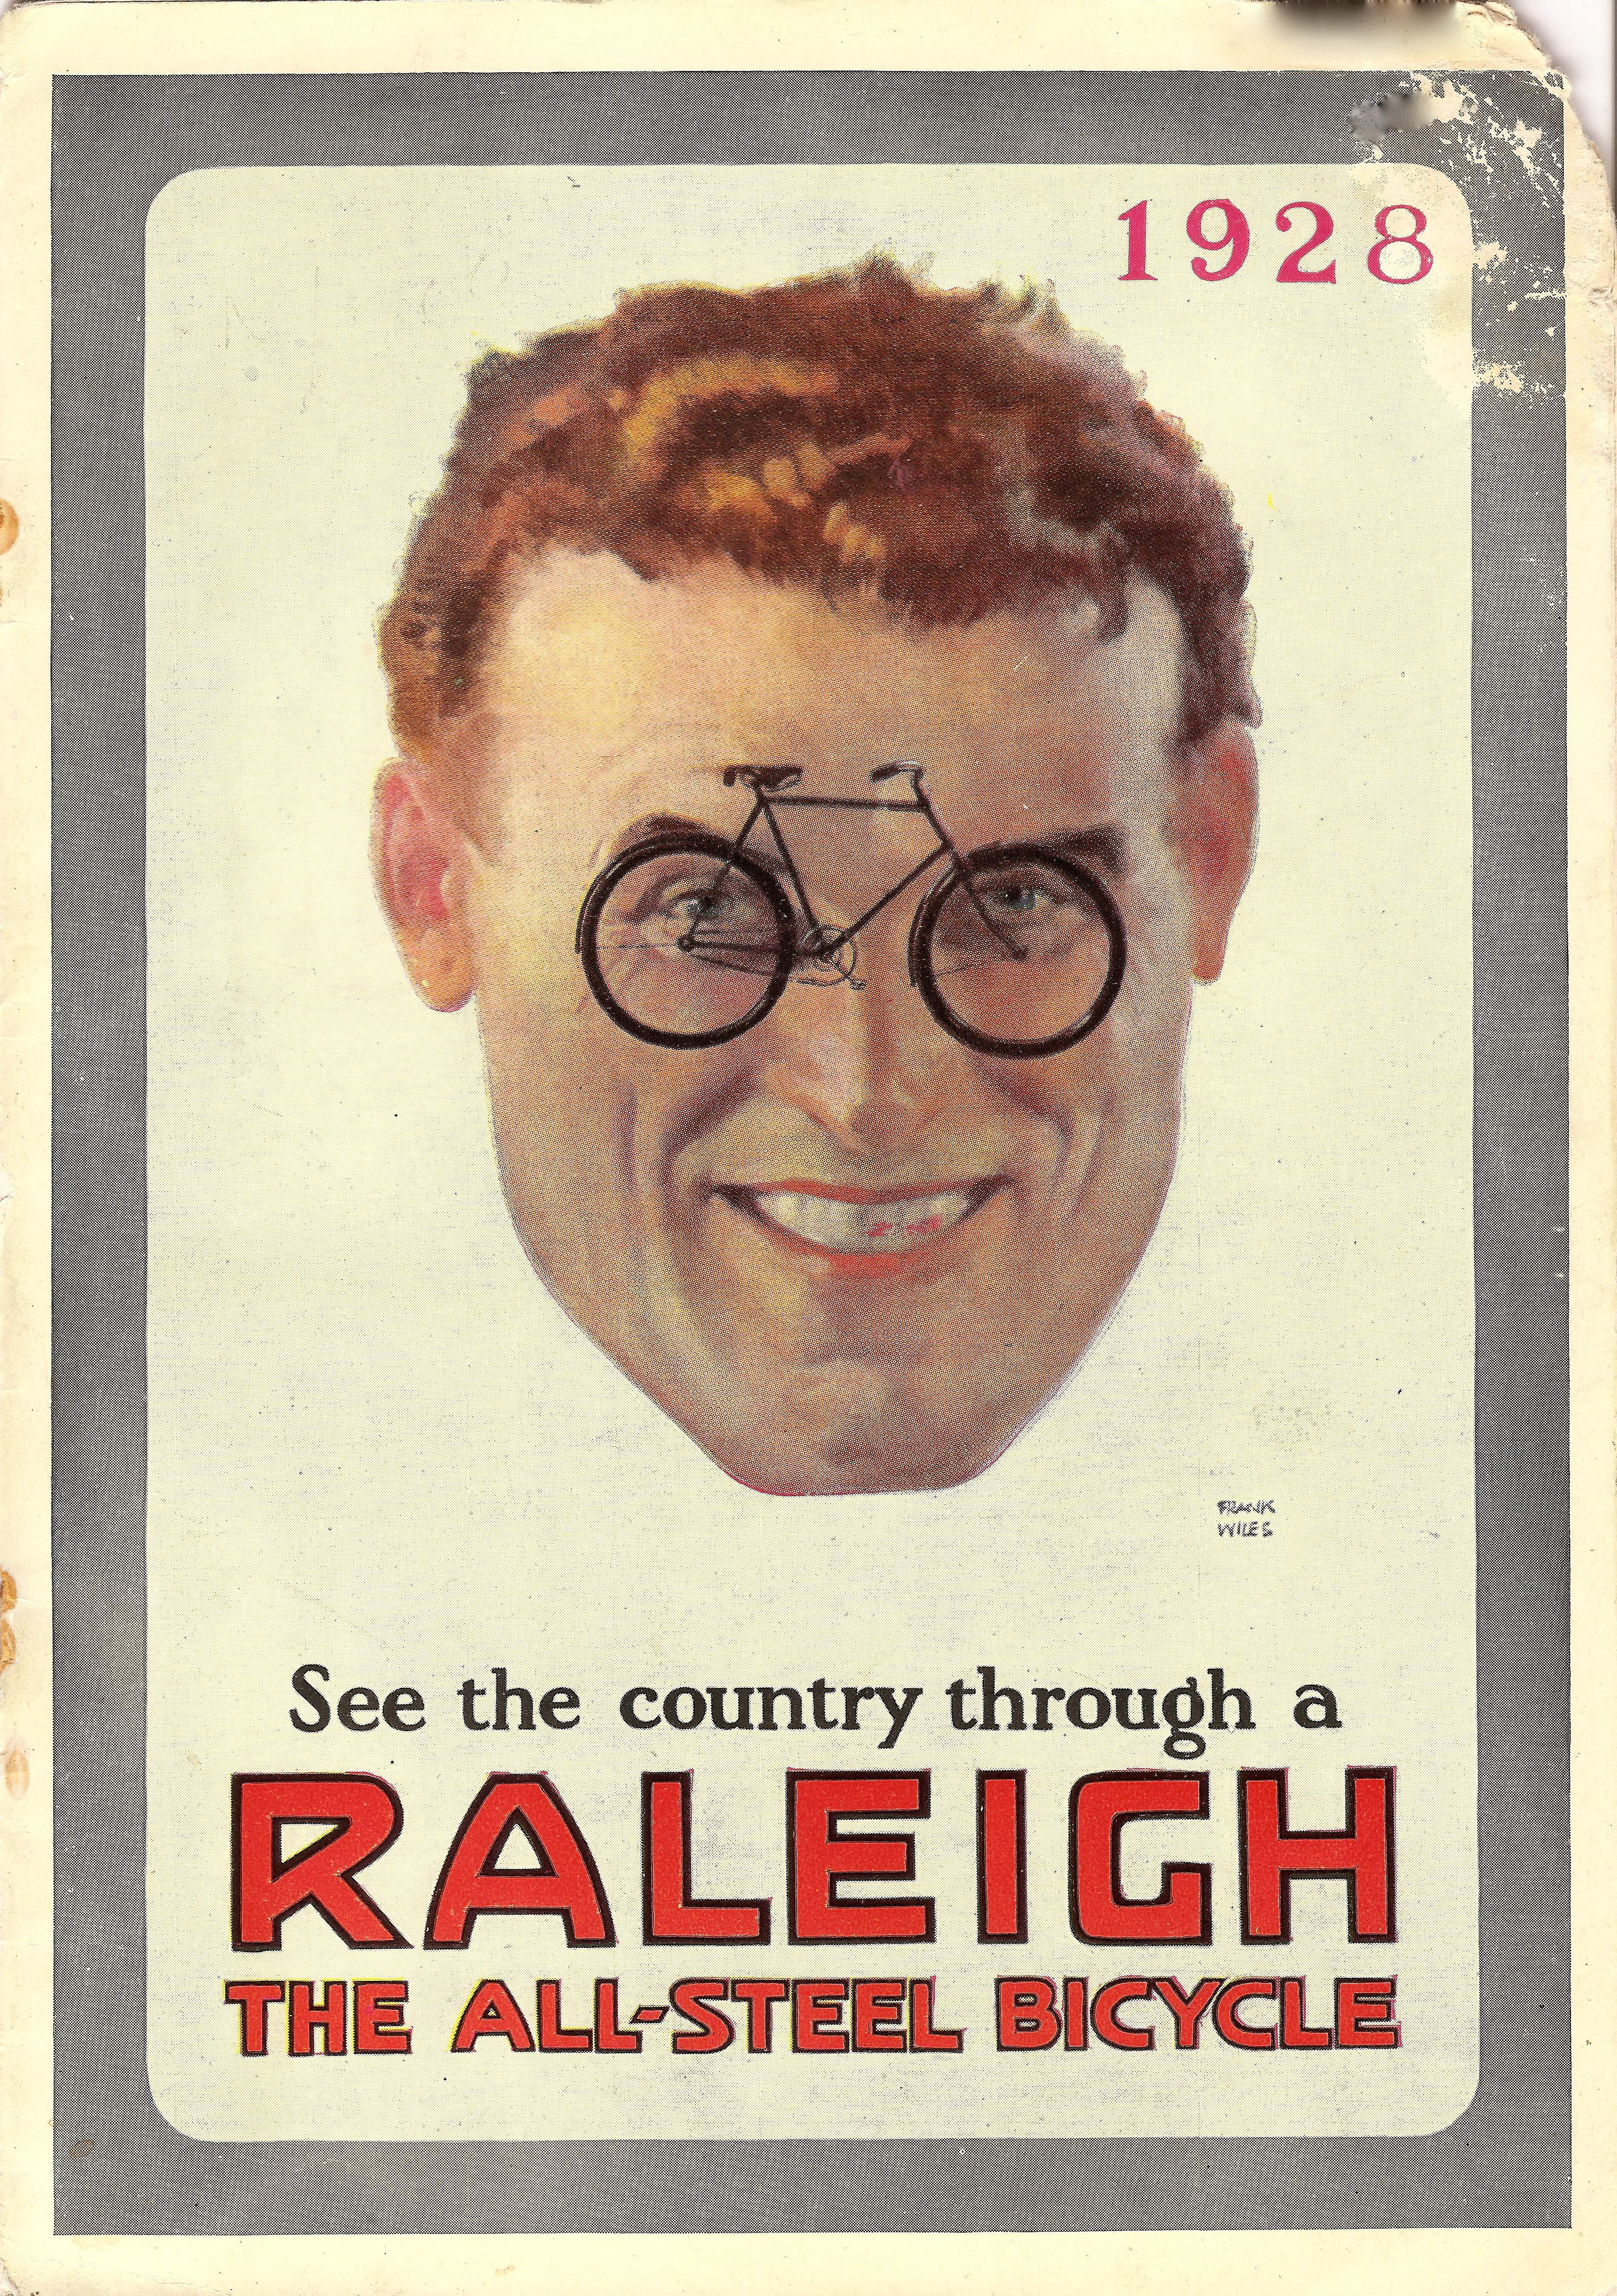 Raleigh image from 1928